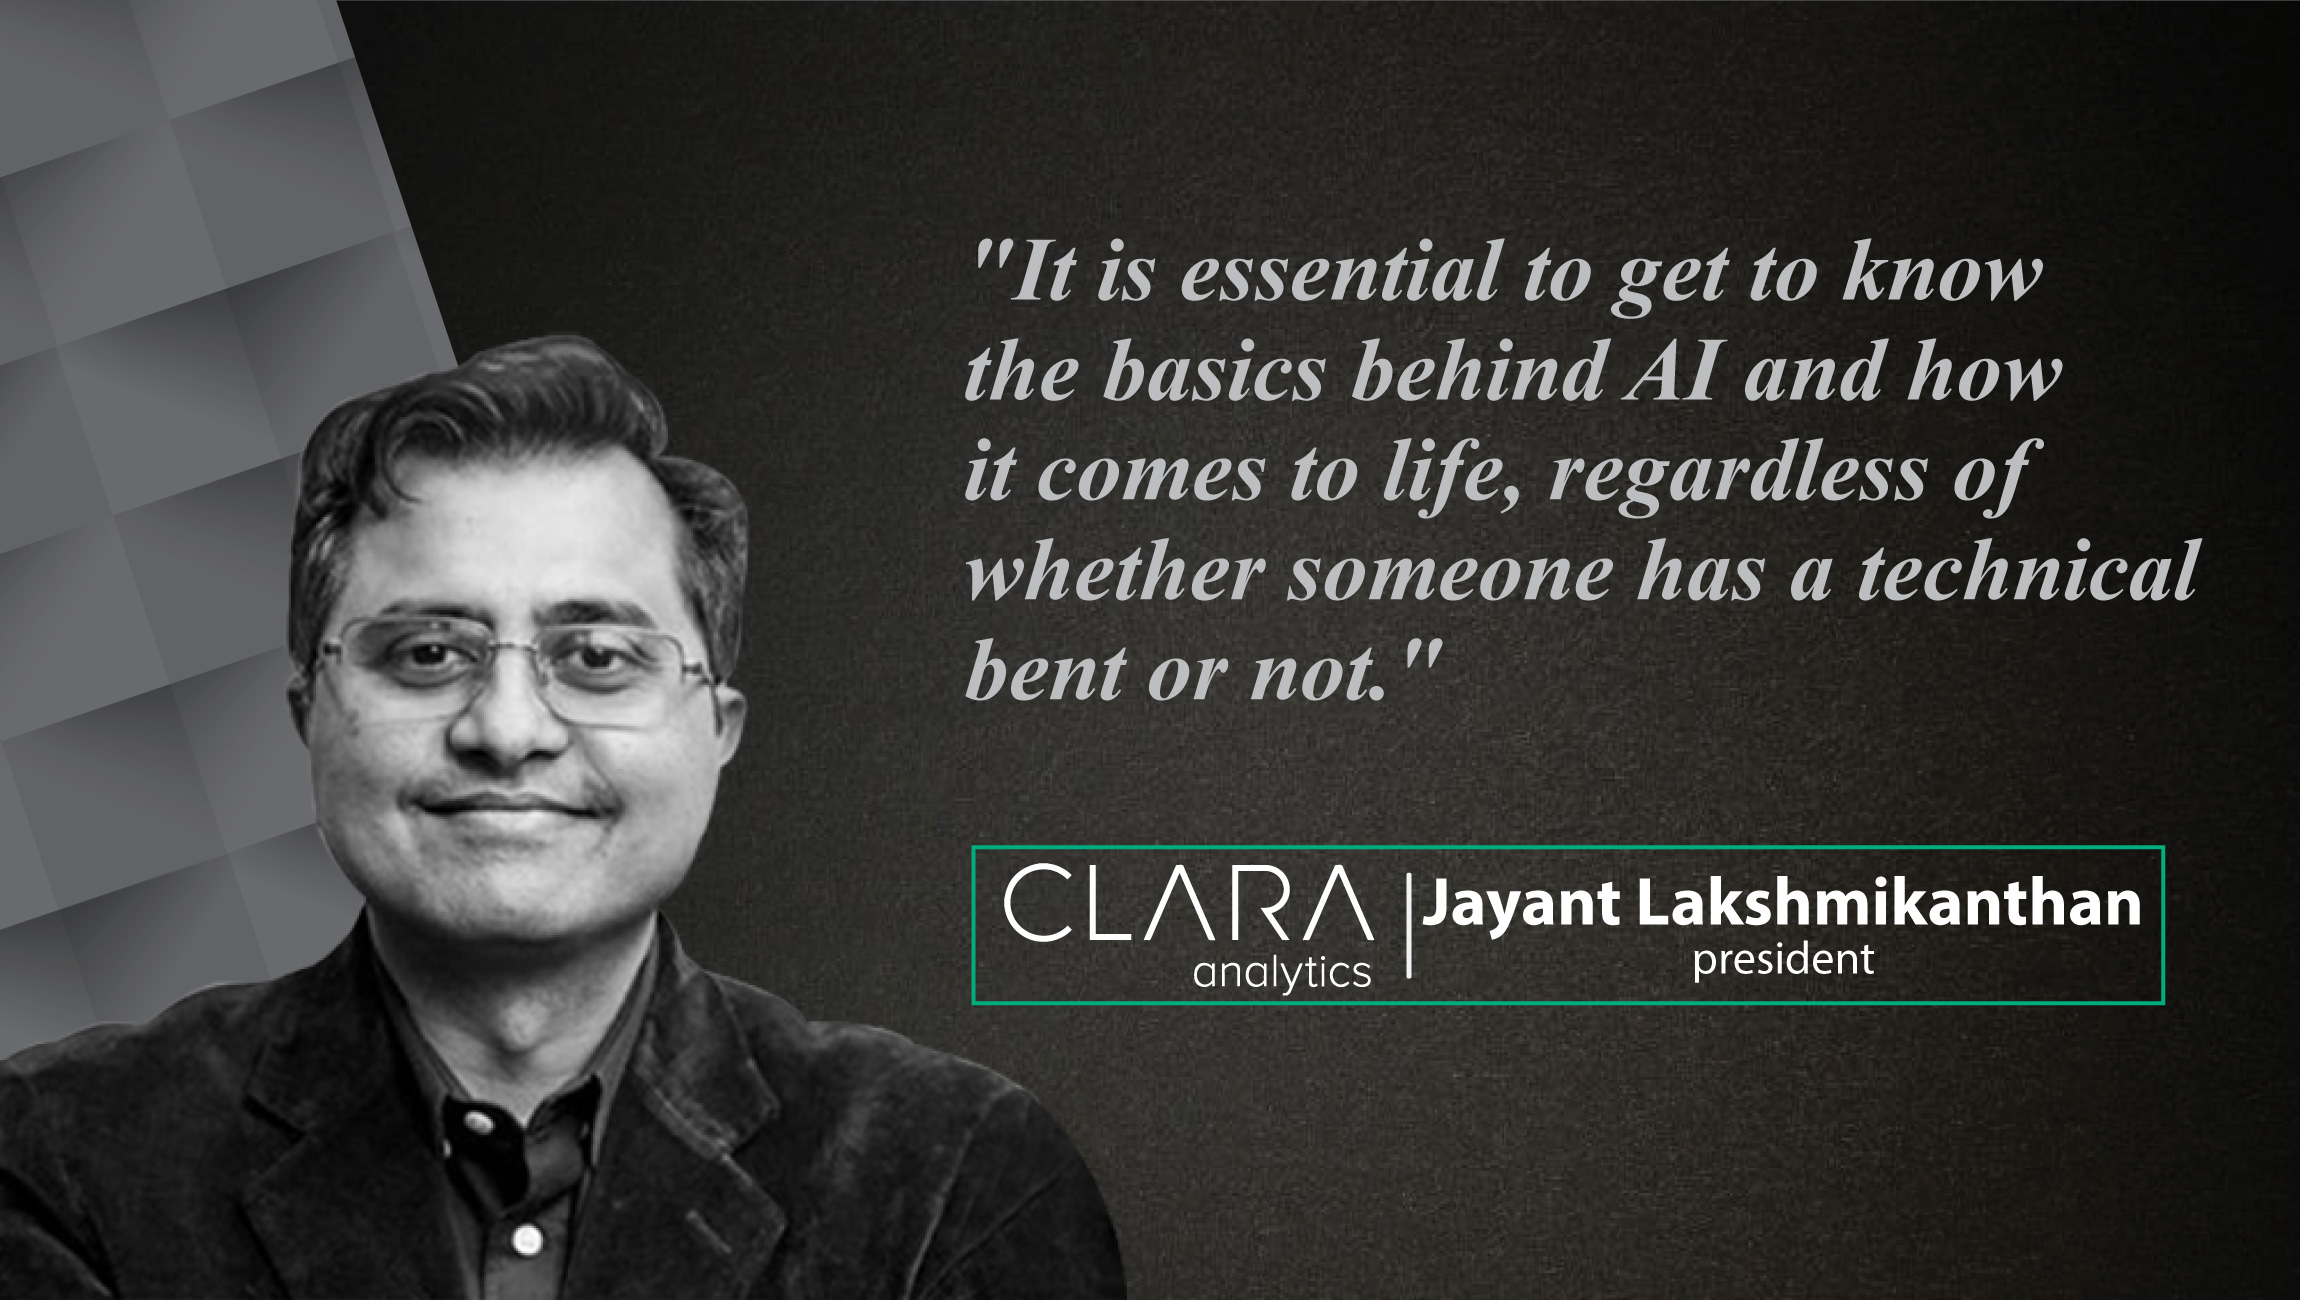 Interview with Jayant Lakshmikanthan, CEO and Founder, CLARA analytics_cue card